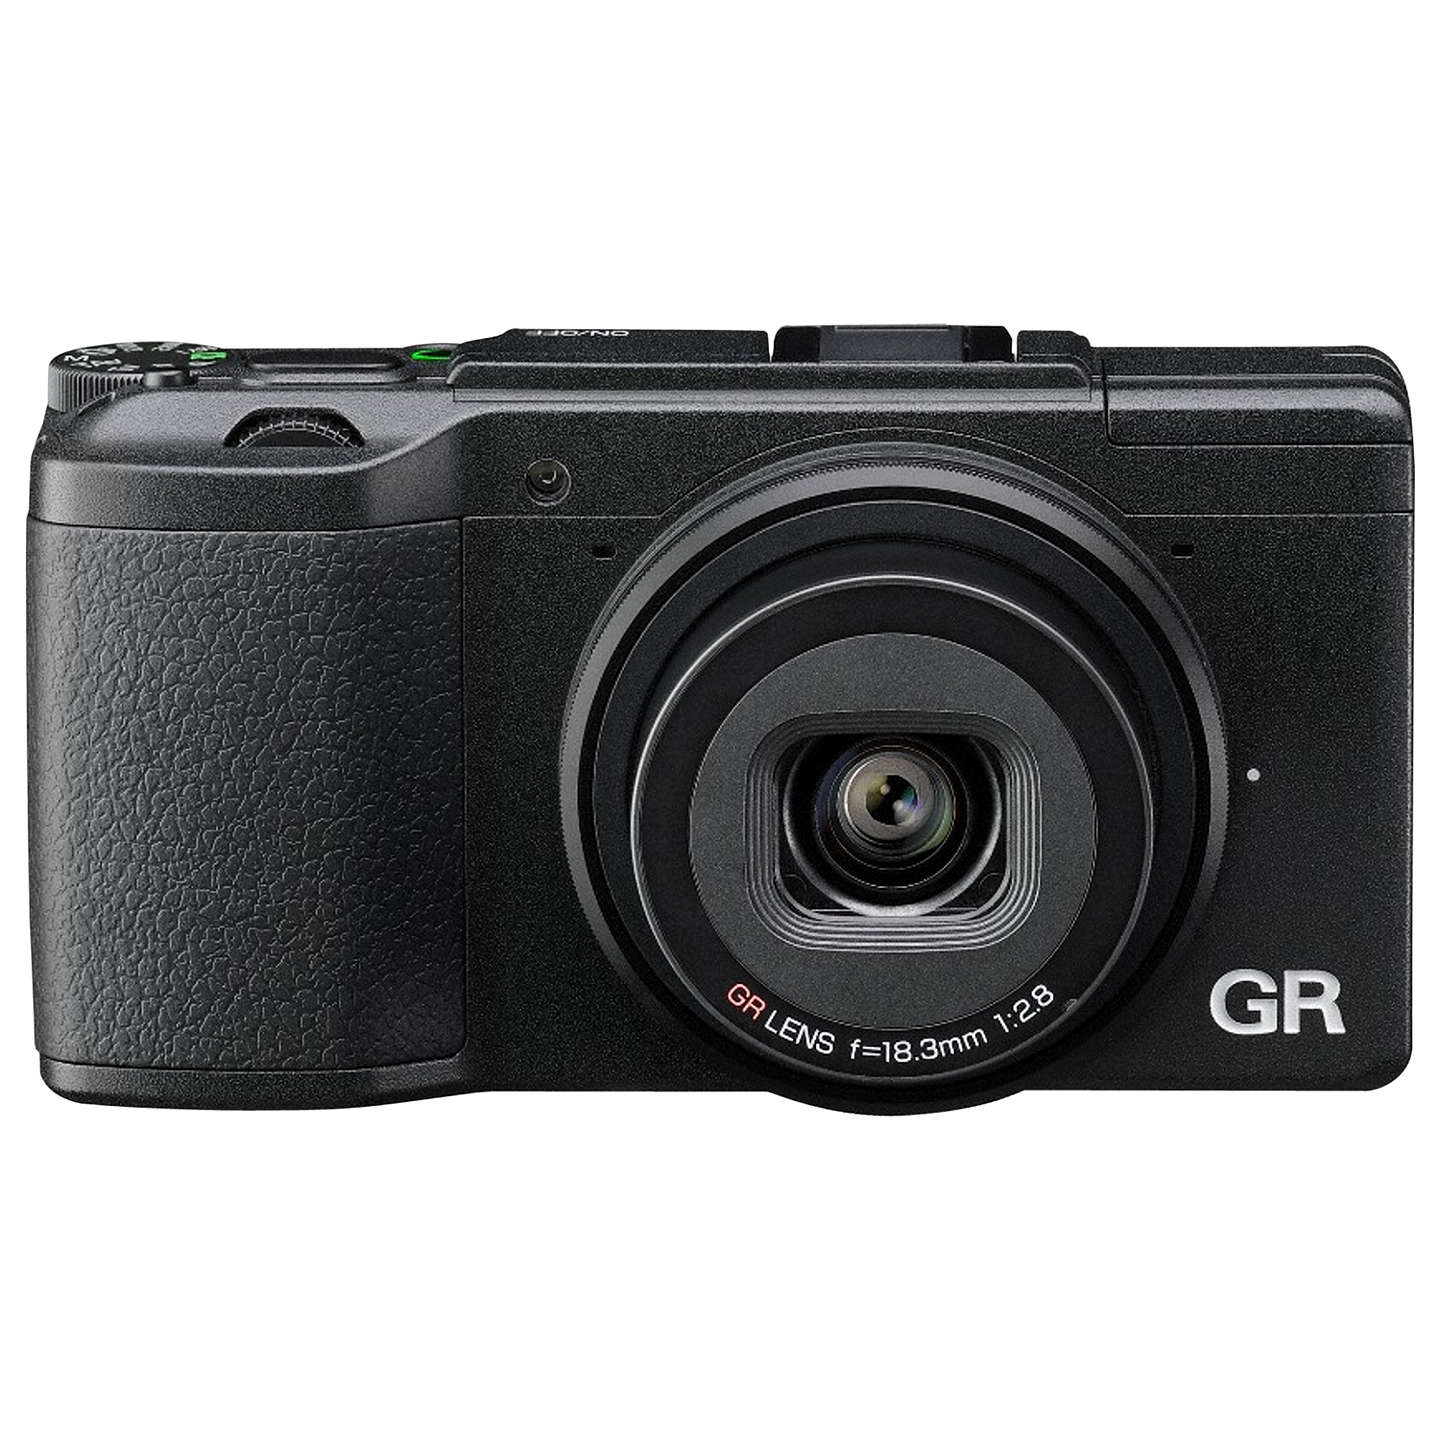 "BuyRicoh GR II Expert Digital Camera, HD 1080p, 16.2MP, Wi-Fi, NFC, 3"" LCD Screen Online at johnlewis.com"